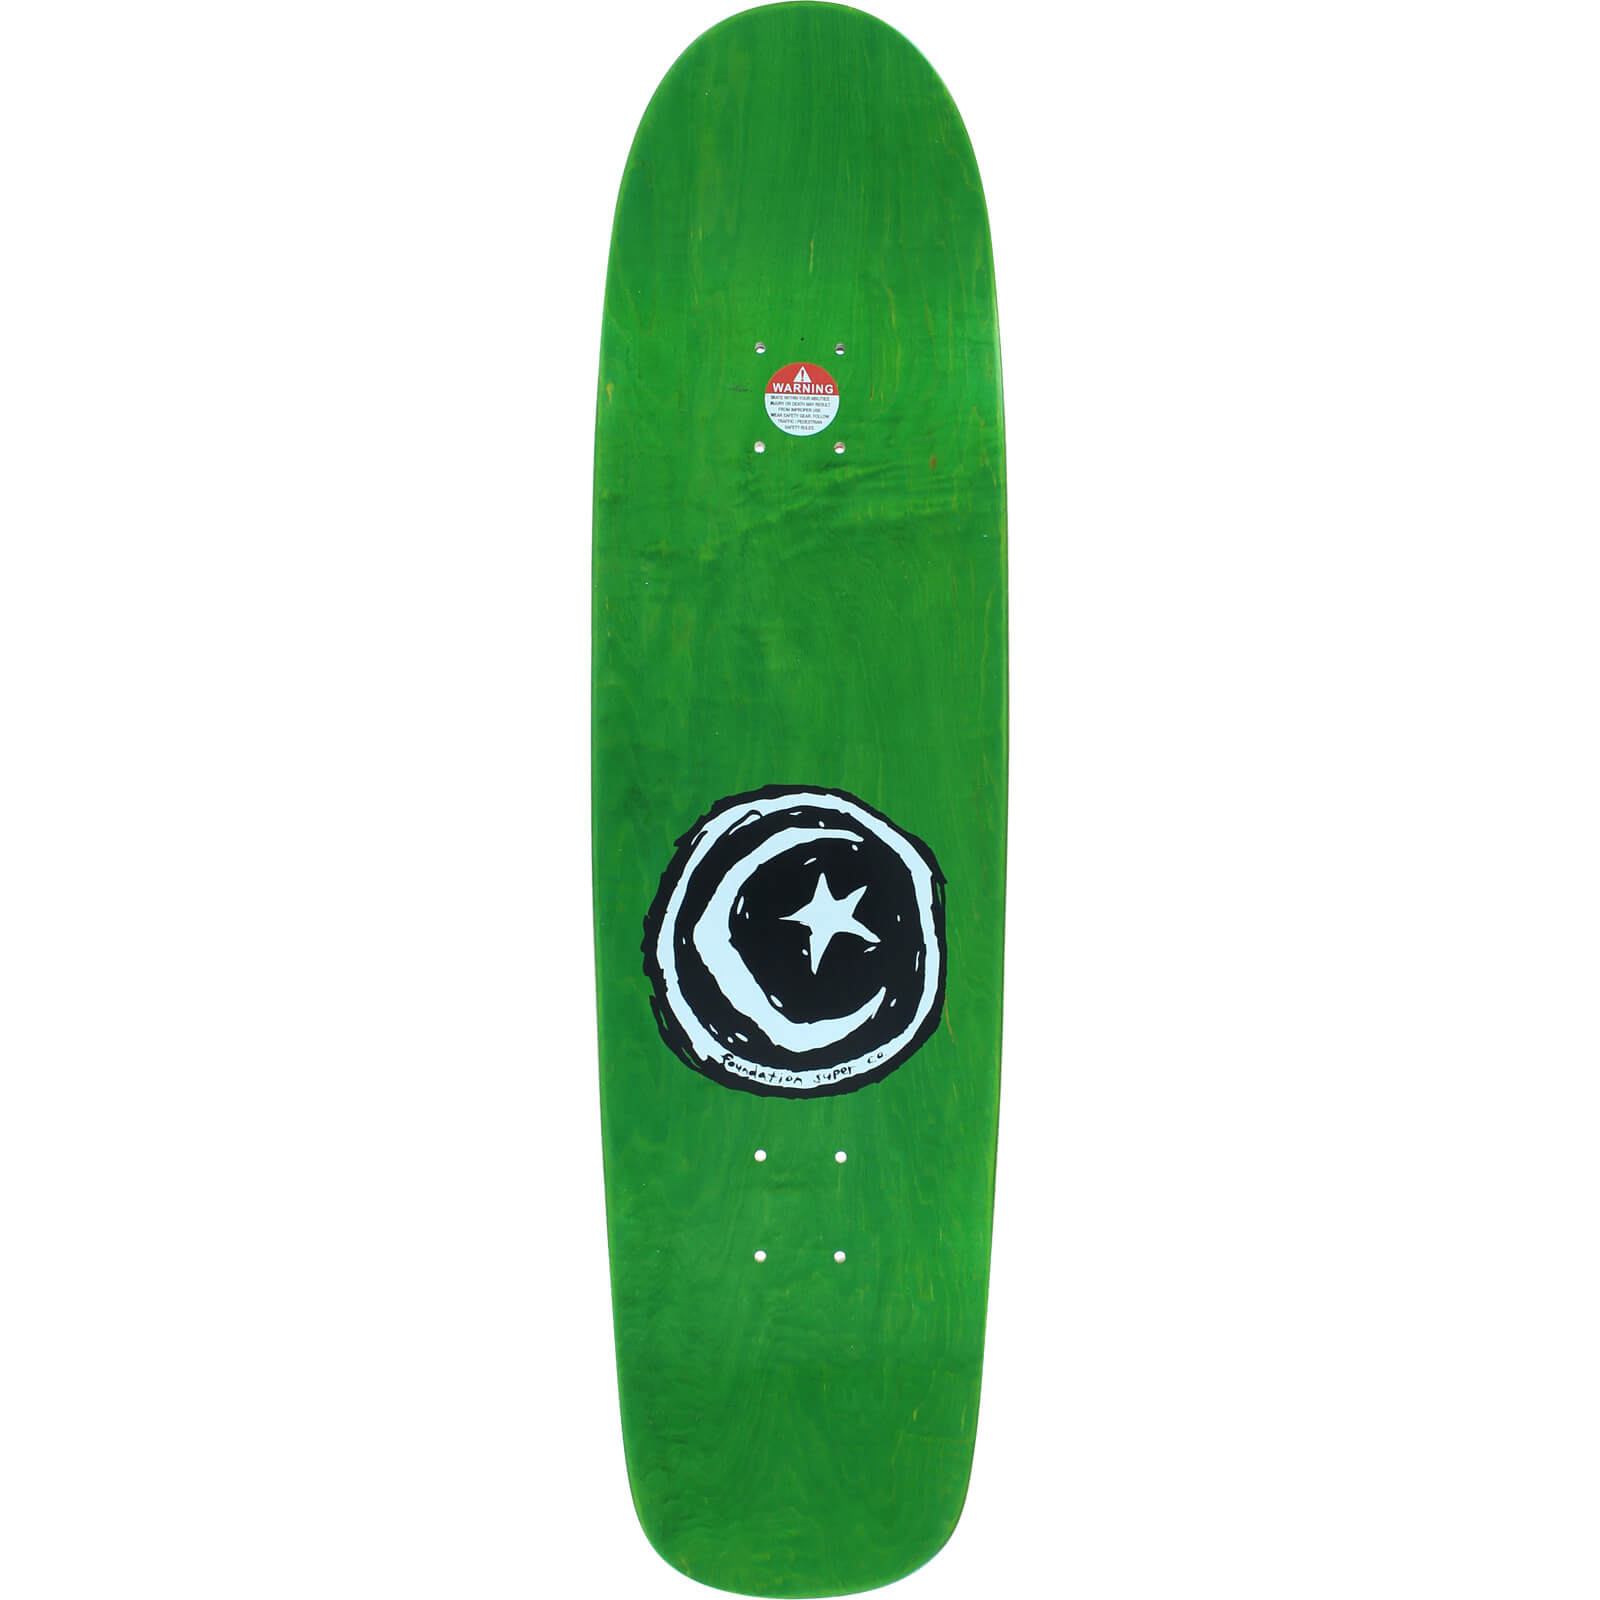 Foundation Skateboards Super Co Black Skateboard Deck 8